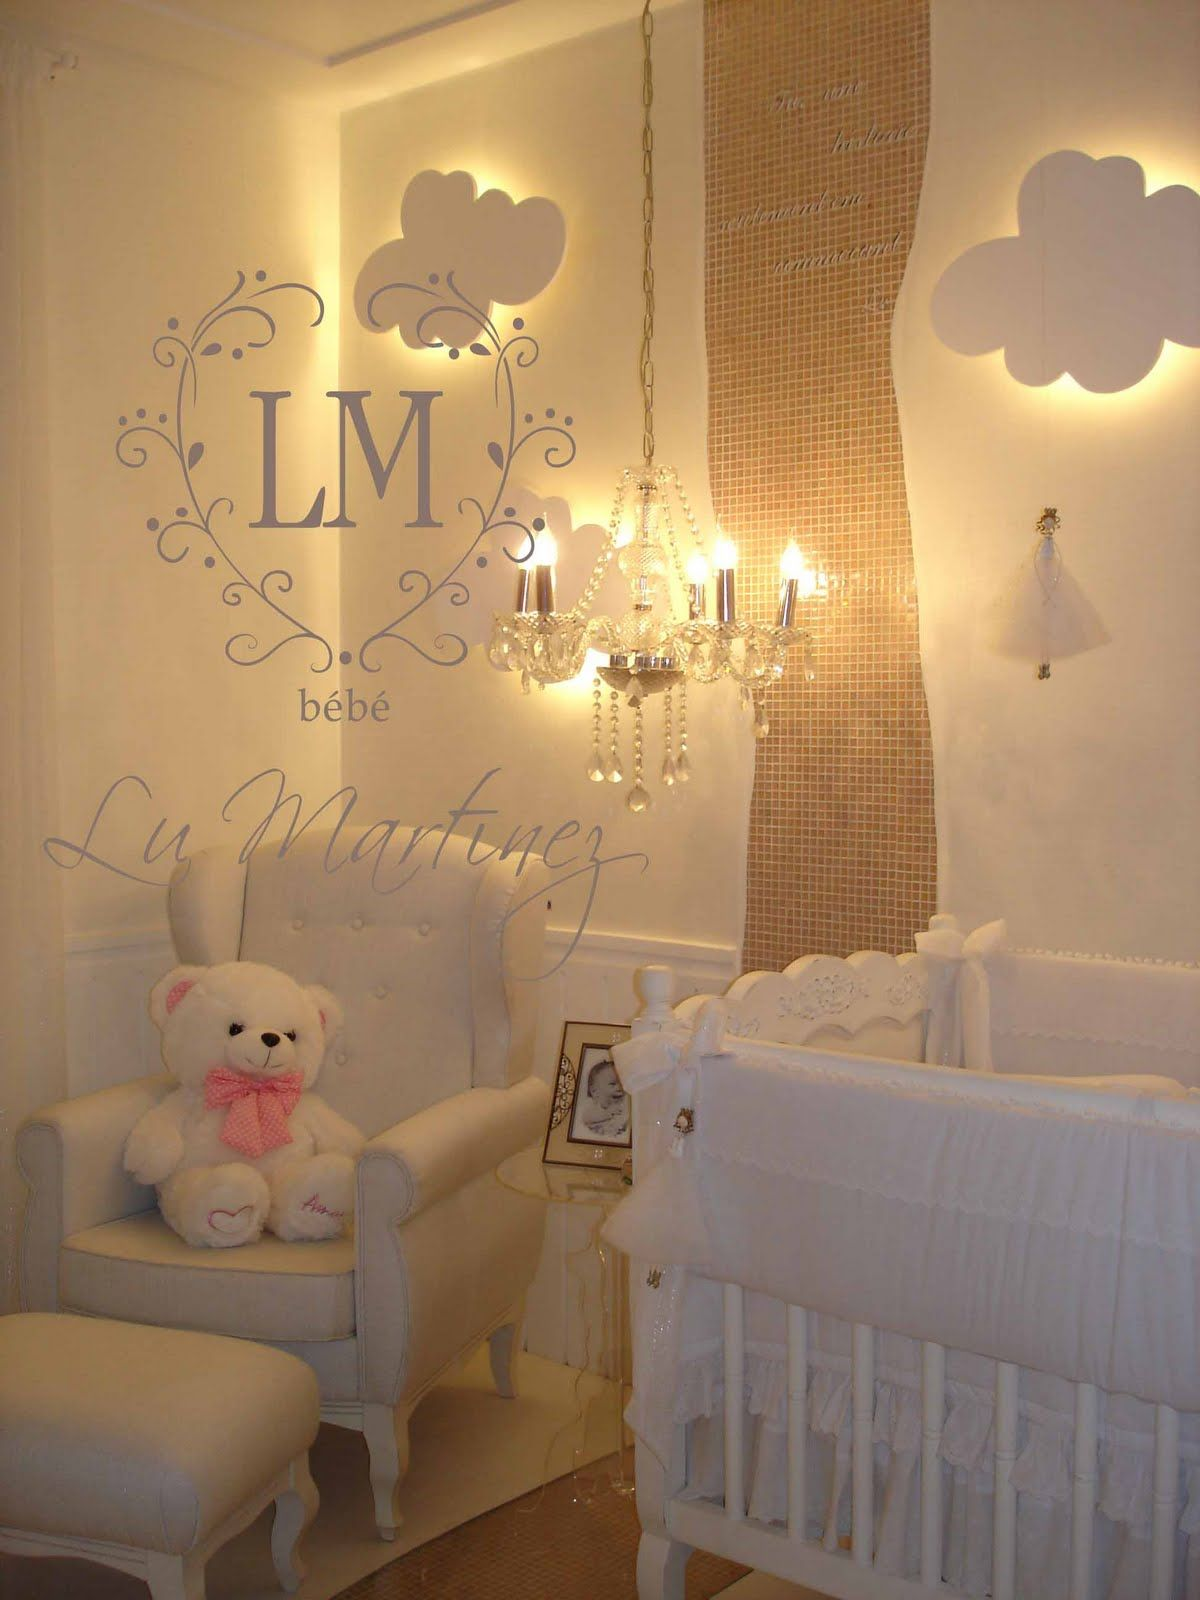 applique nuage minis banane noisette pinterest. Black Bedroom Furniture Sets. Home Design Ideas